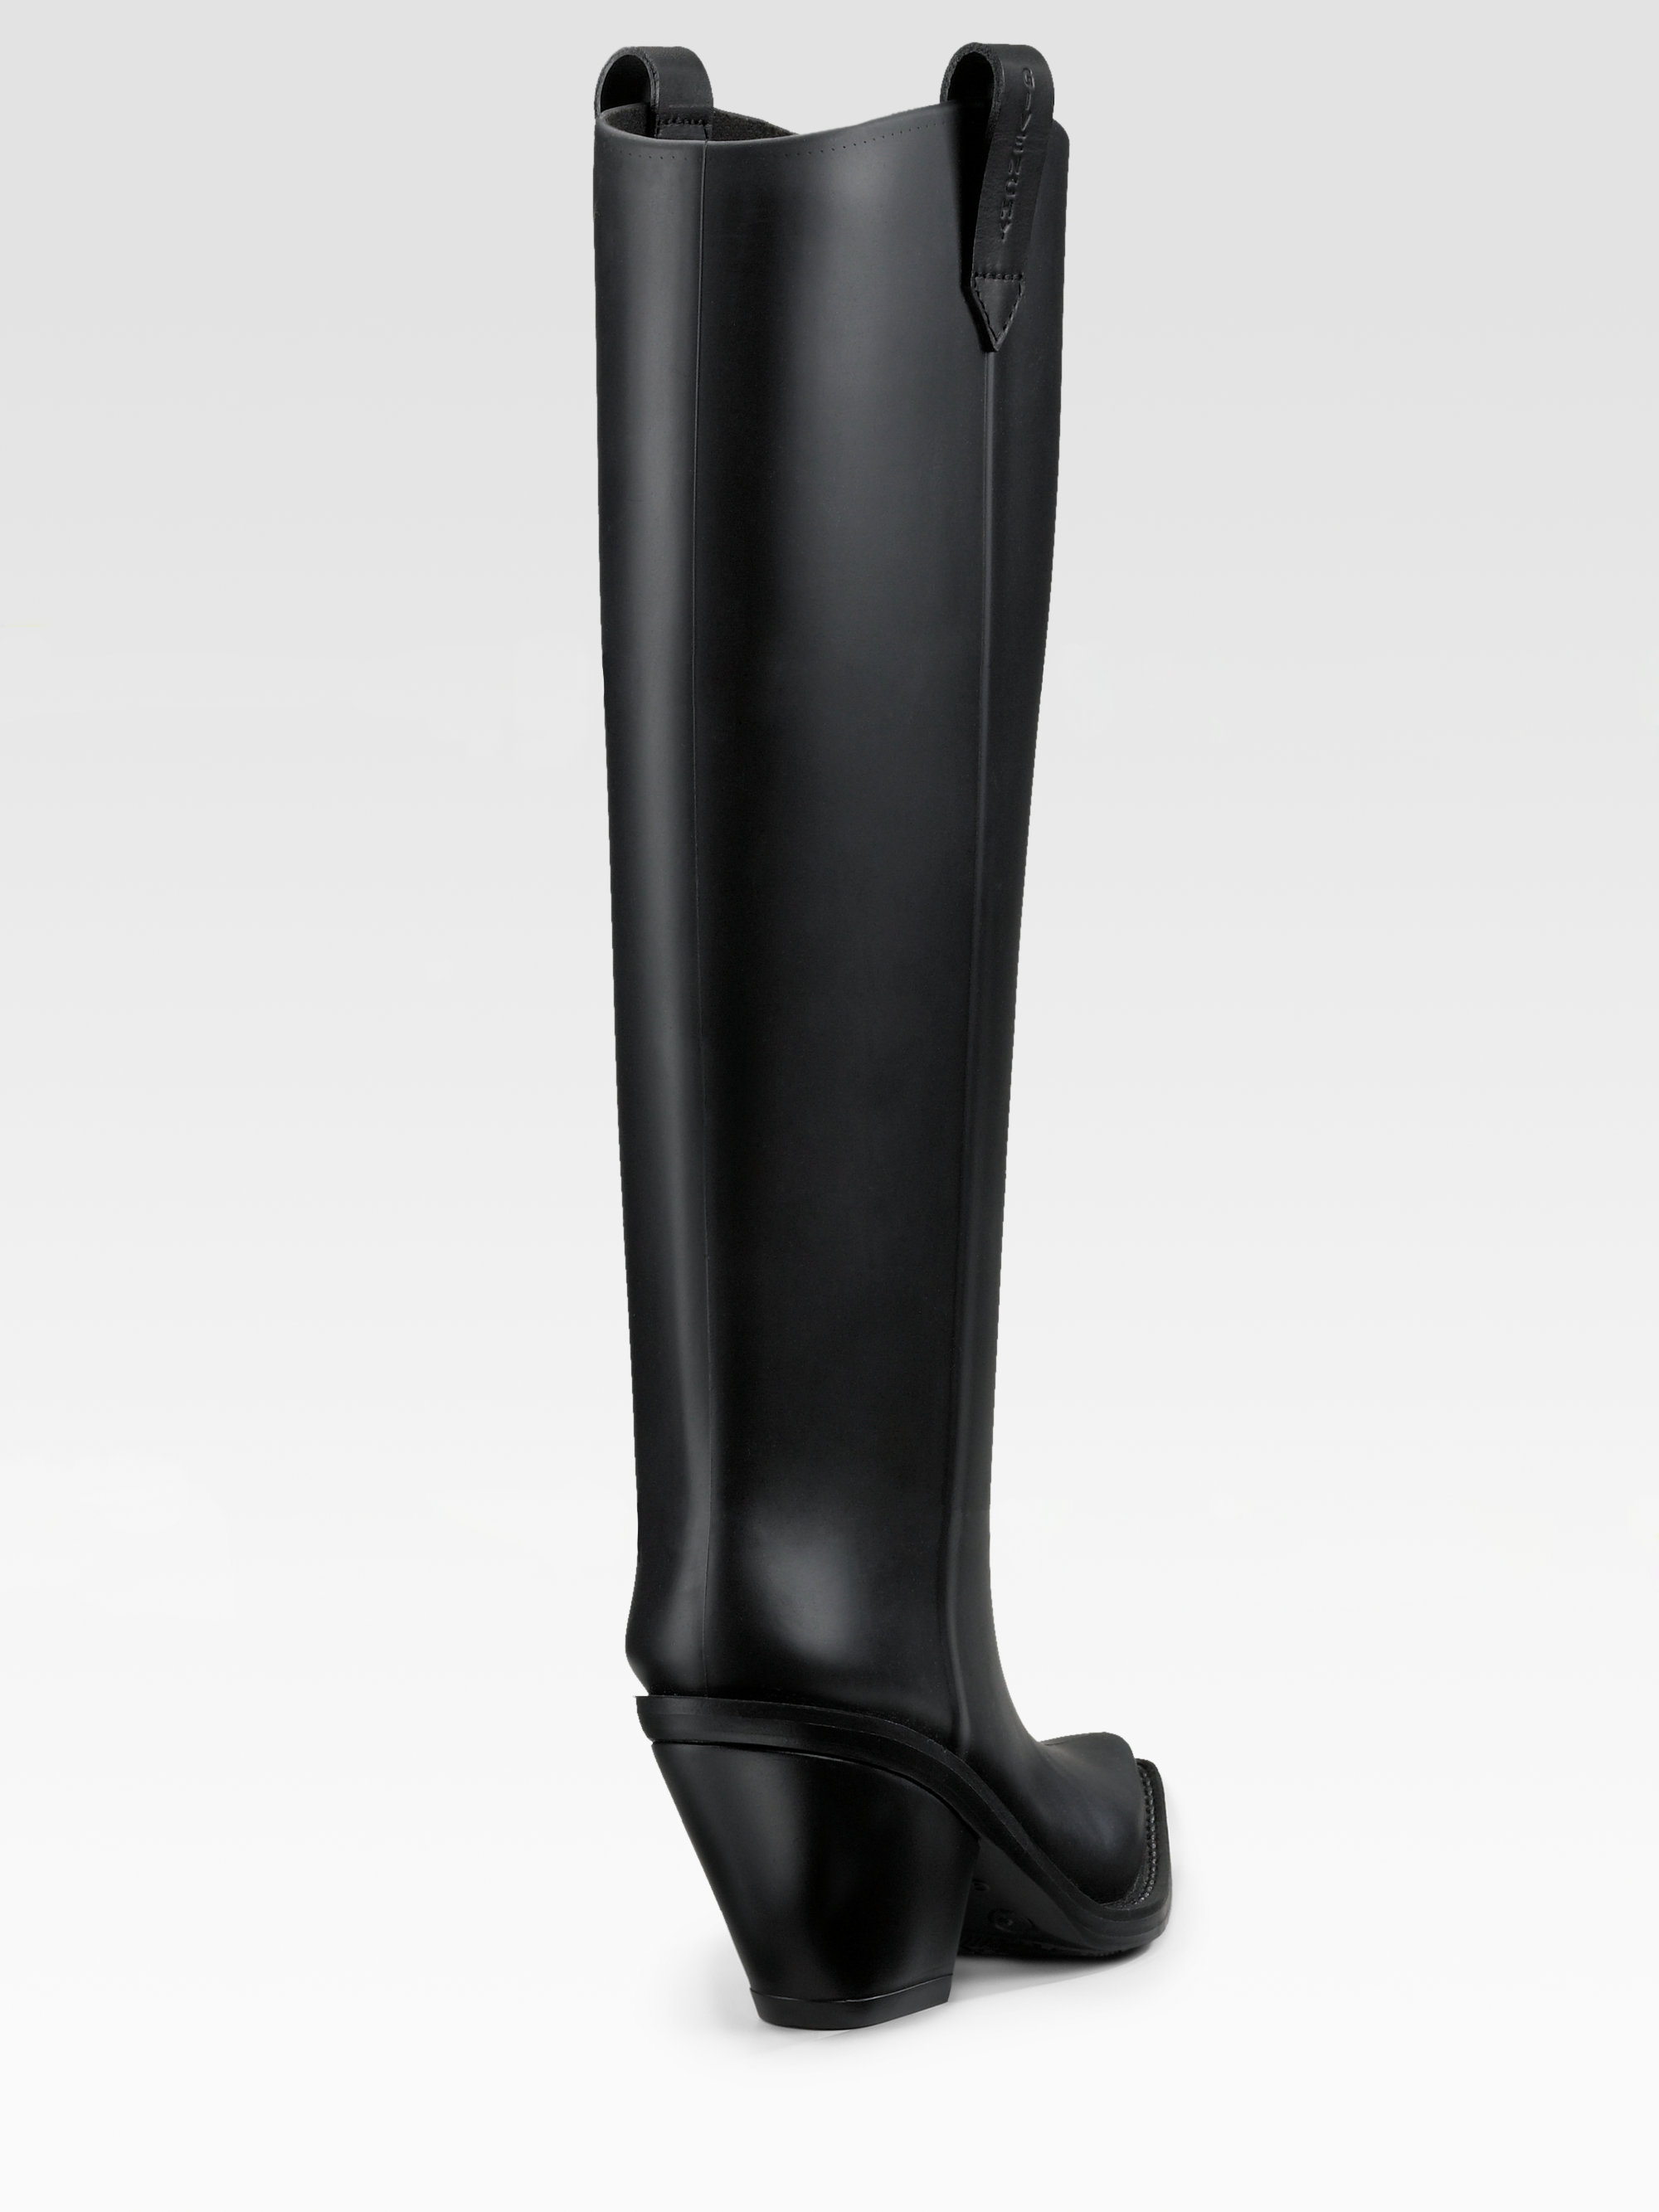 Givenchy Rubber Cowboy Boots in Black